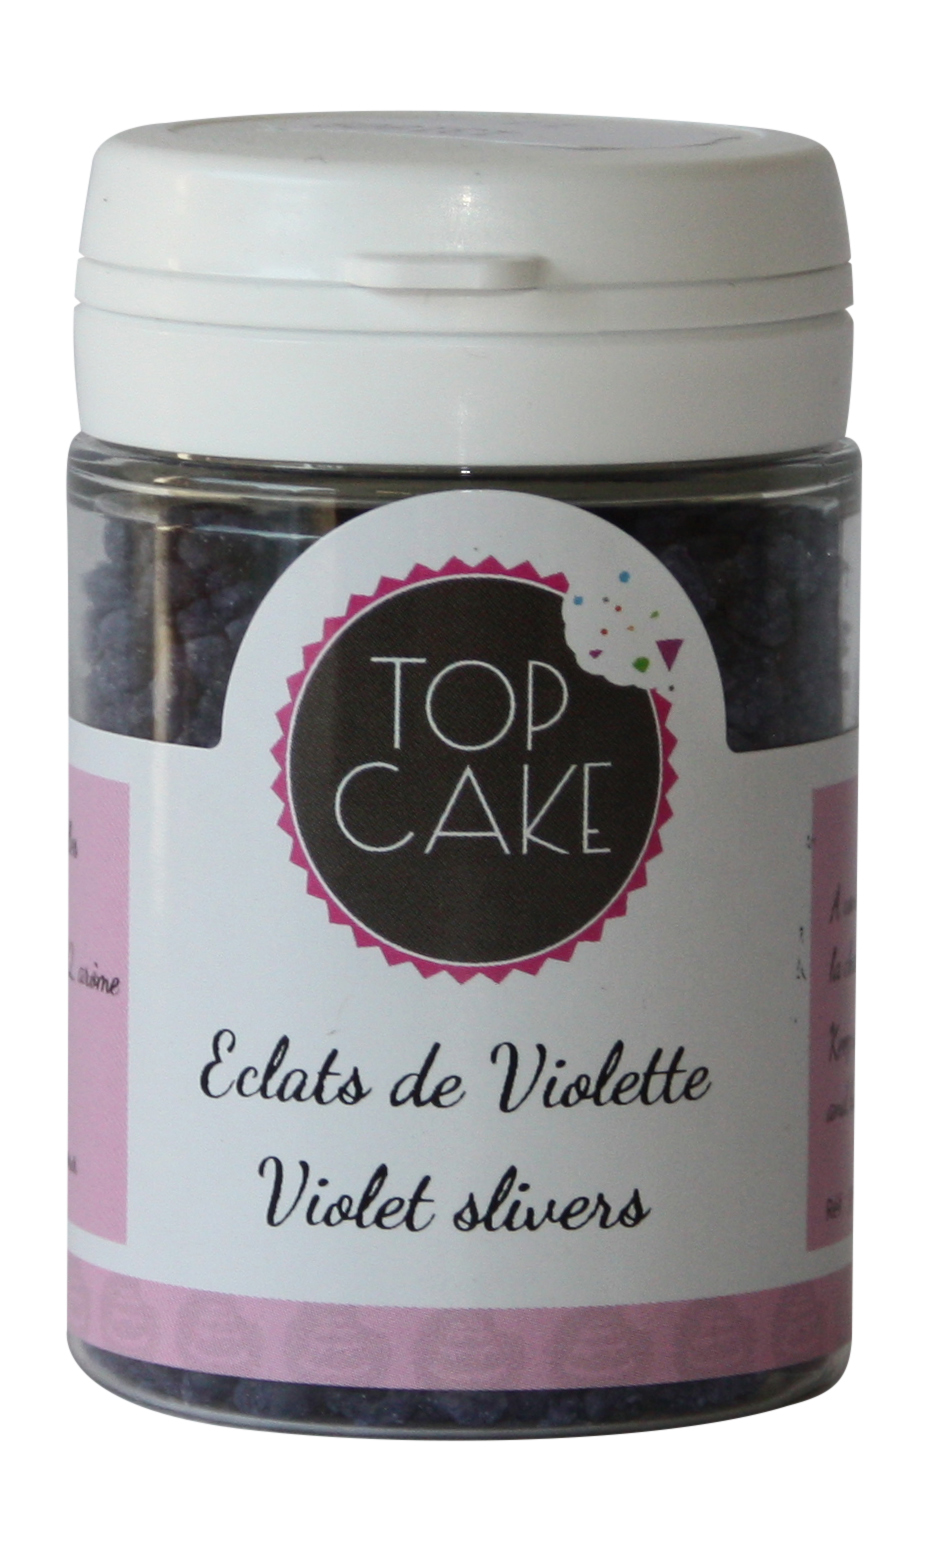 TopCake - Candied violets shards x 50g